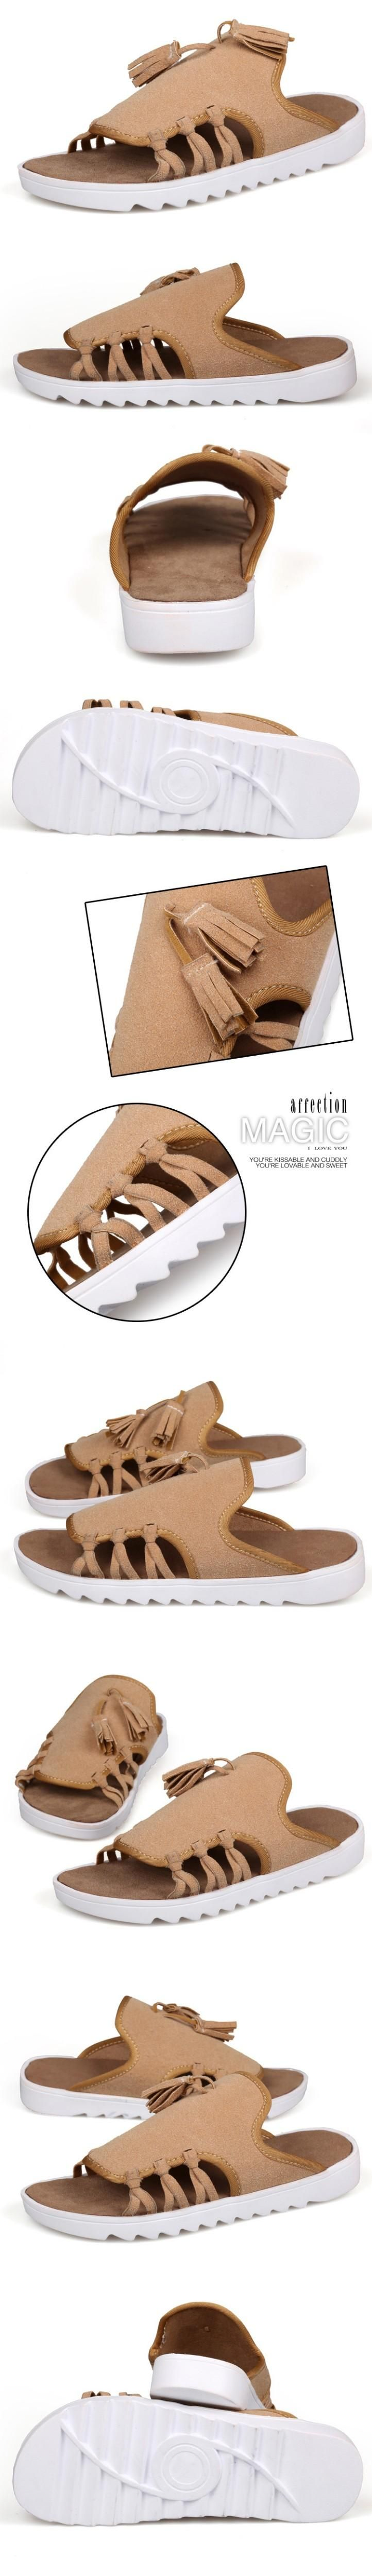 Men Sandals Open Toe Casual Mixed Color Male Shoes England Style Cut-outs Men Shoes Fashion Platforms Slippers  http://playertronics.com/products/men-sandals-open-toe-casual-mixed-color-male-shoes-england-style-cut-outs-men-shoes-fashion-platforms-slippers/